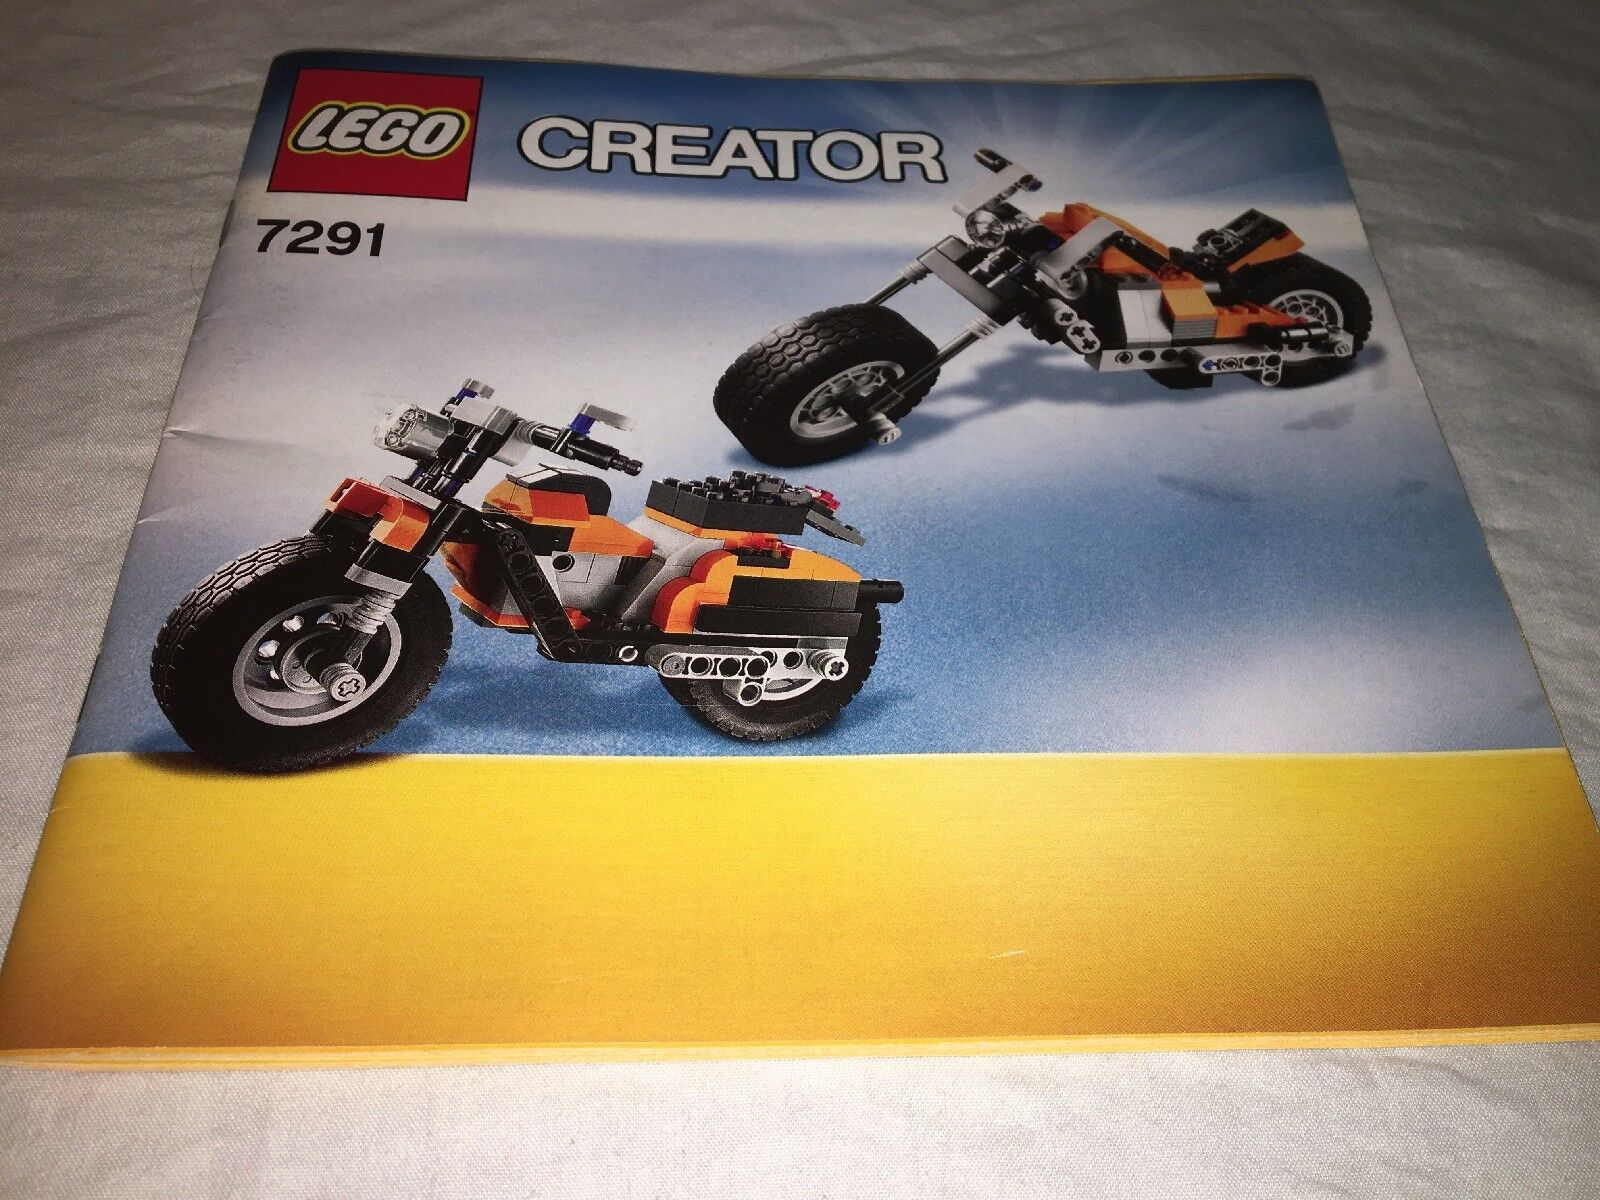 LEGO Rebel 7291 Creator Street Rebel LEGO 3-in-1 Complete with Both Instruction Books 401868